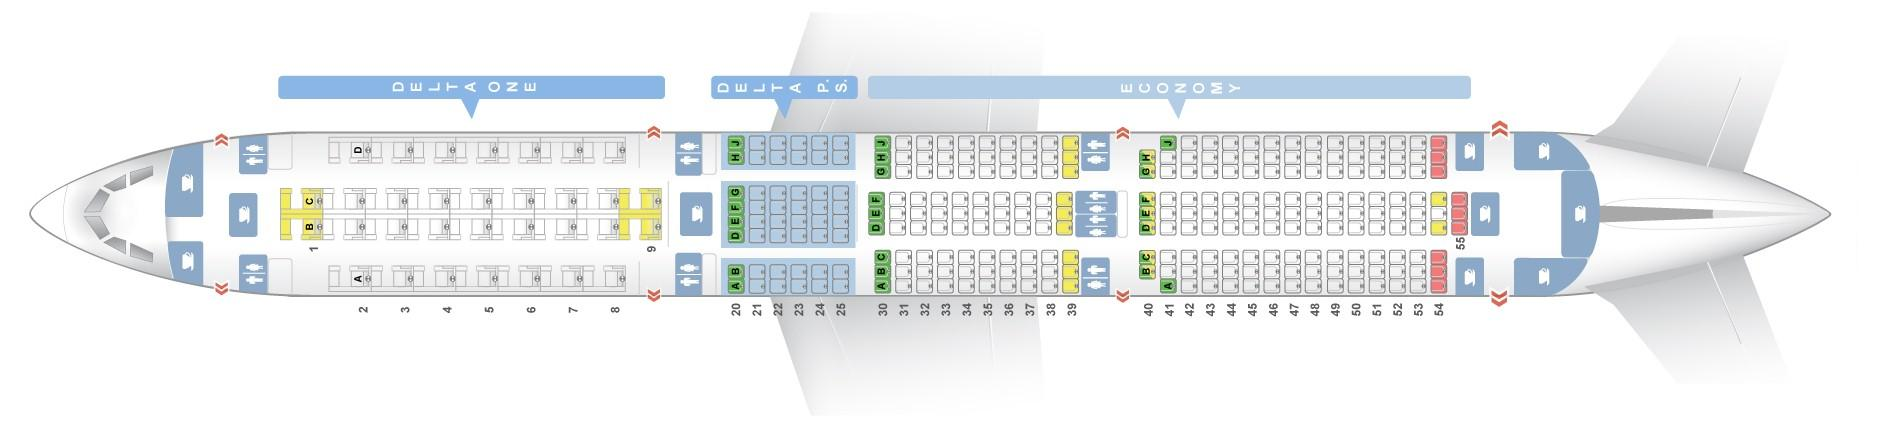 Seat Map Airbus A350 900 Delta Airlines Best Seats In The Plane